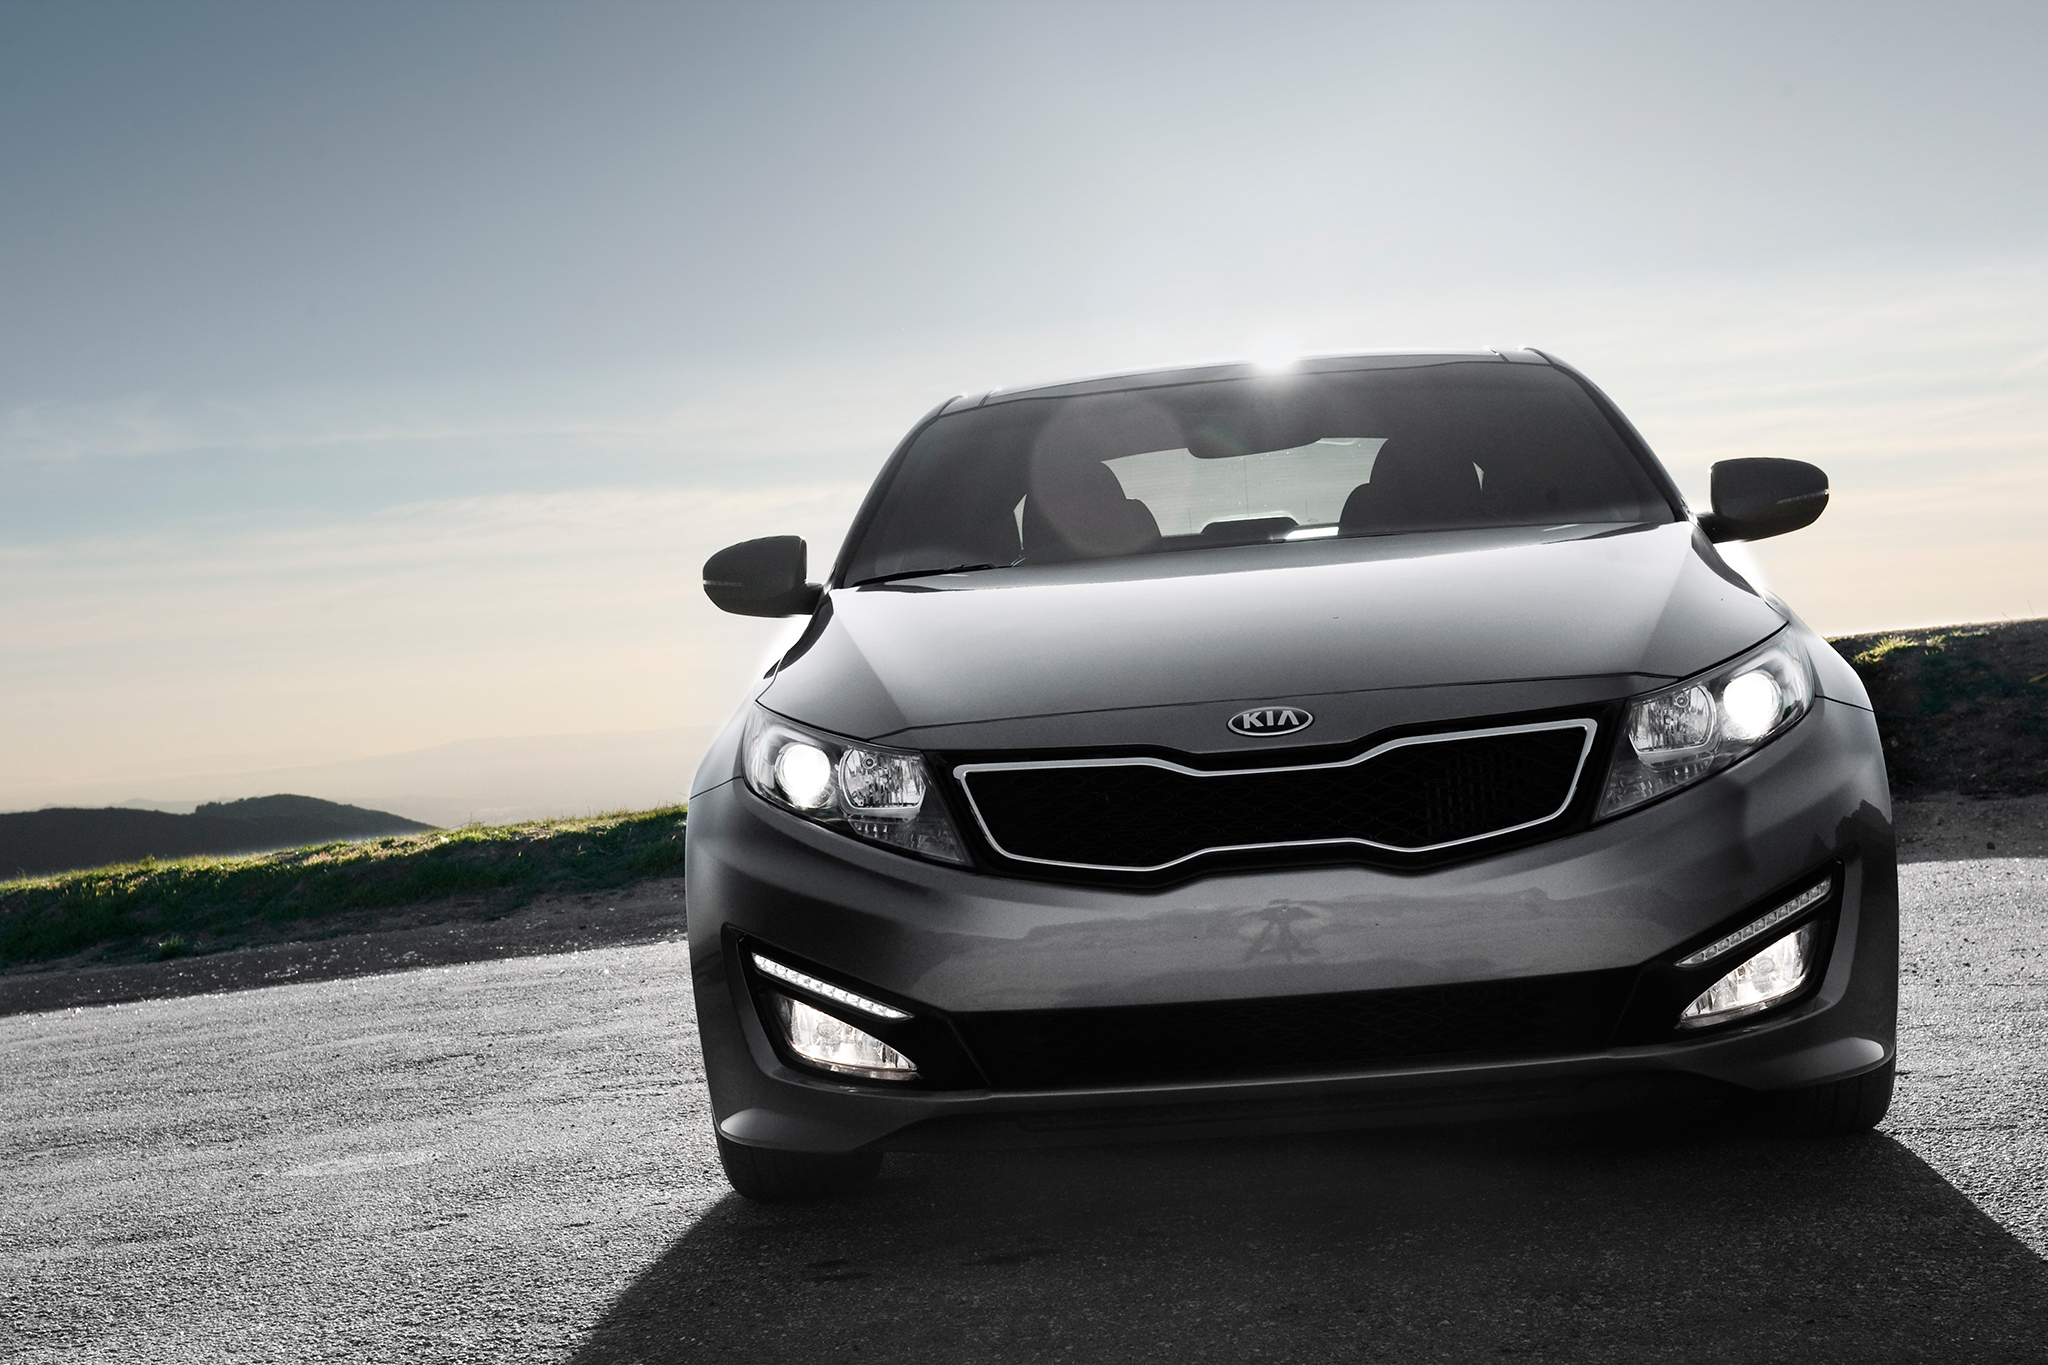 Superb 2013 Kia Optima SXL Long Term Update 5